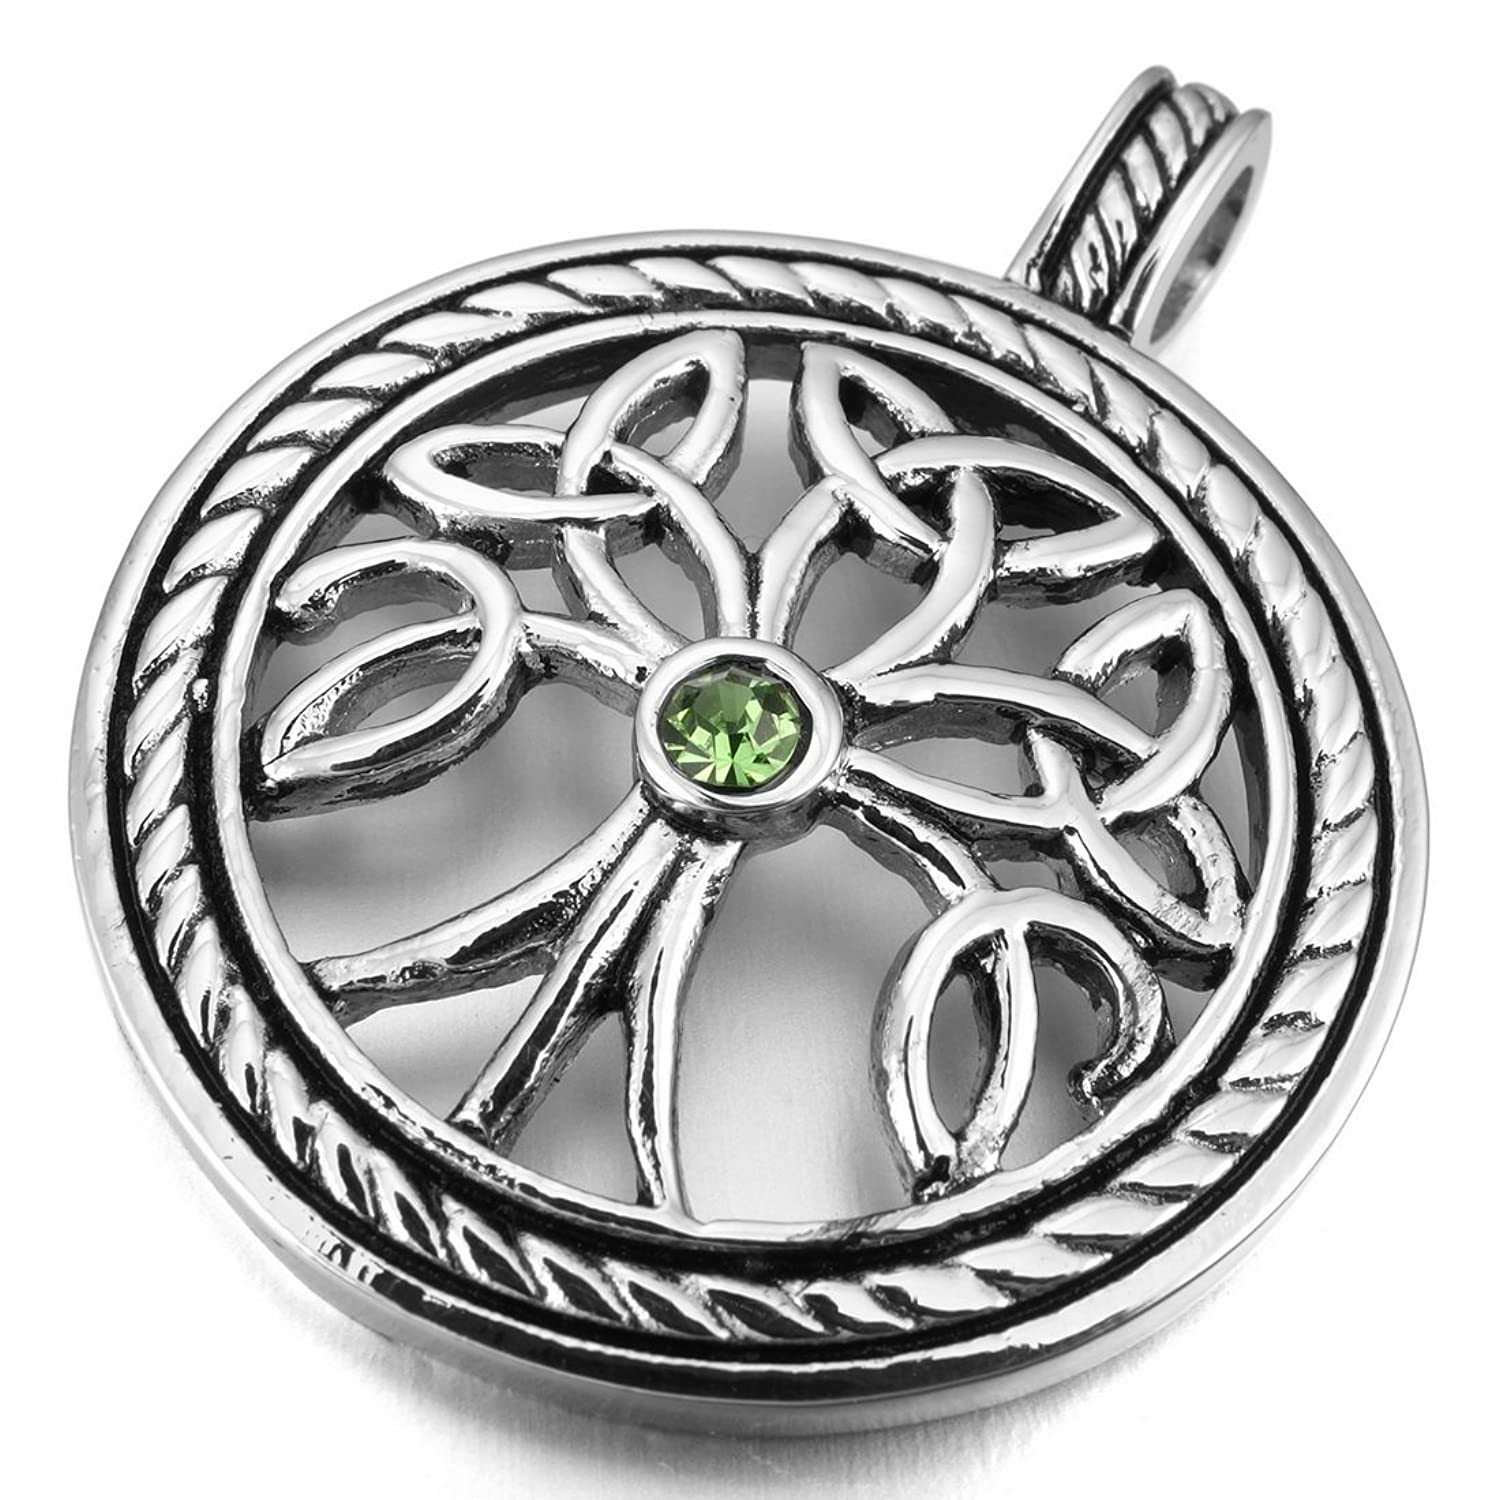 INBLUE Men's Stainless Steel Pendant Necklace CZ Silver Tone Tree of Life Irish Celtic Knot Triquetra -With 23 Inch Chain